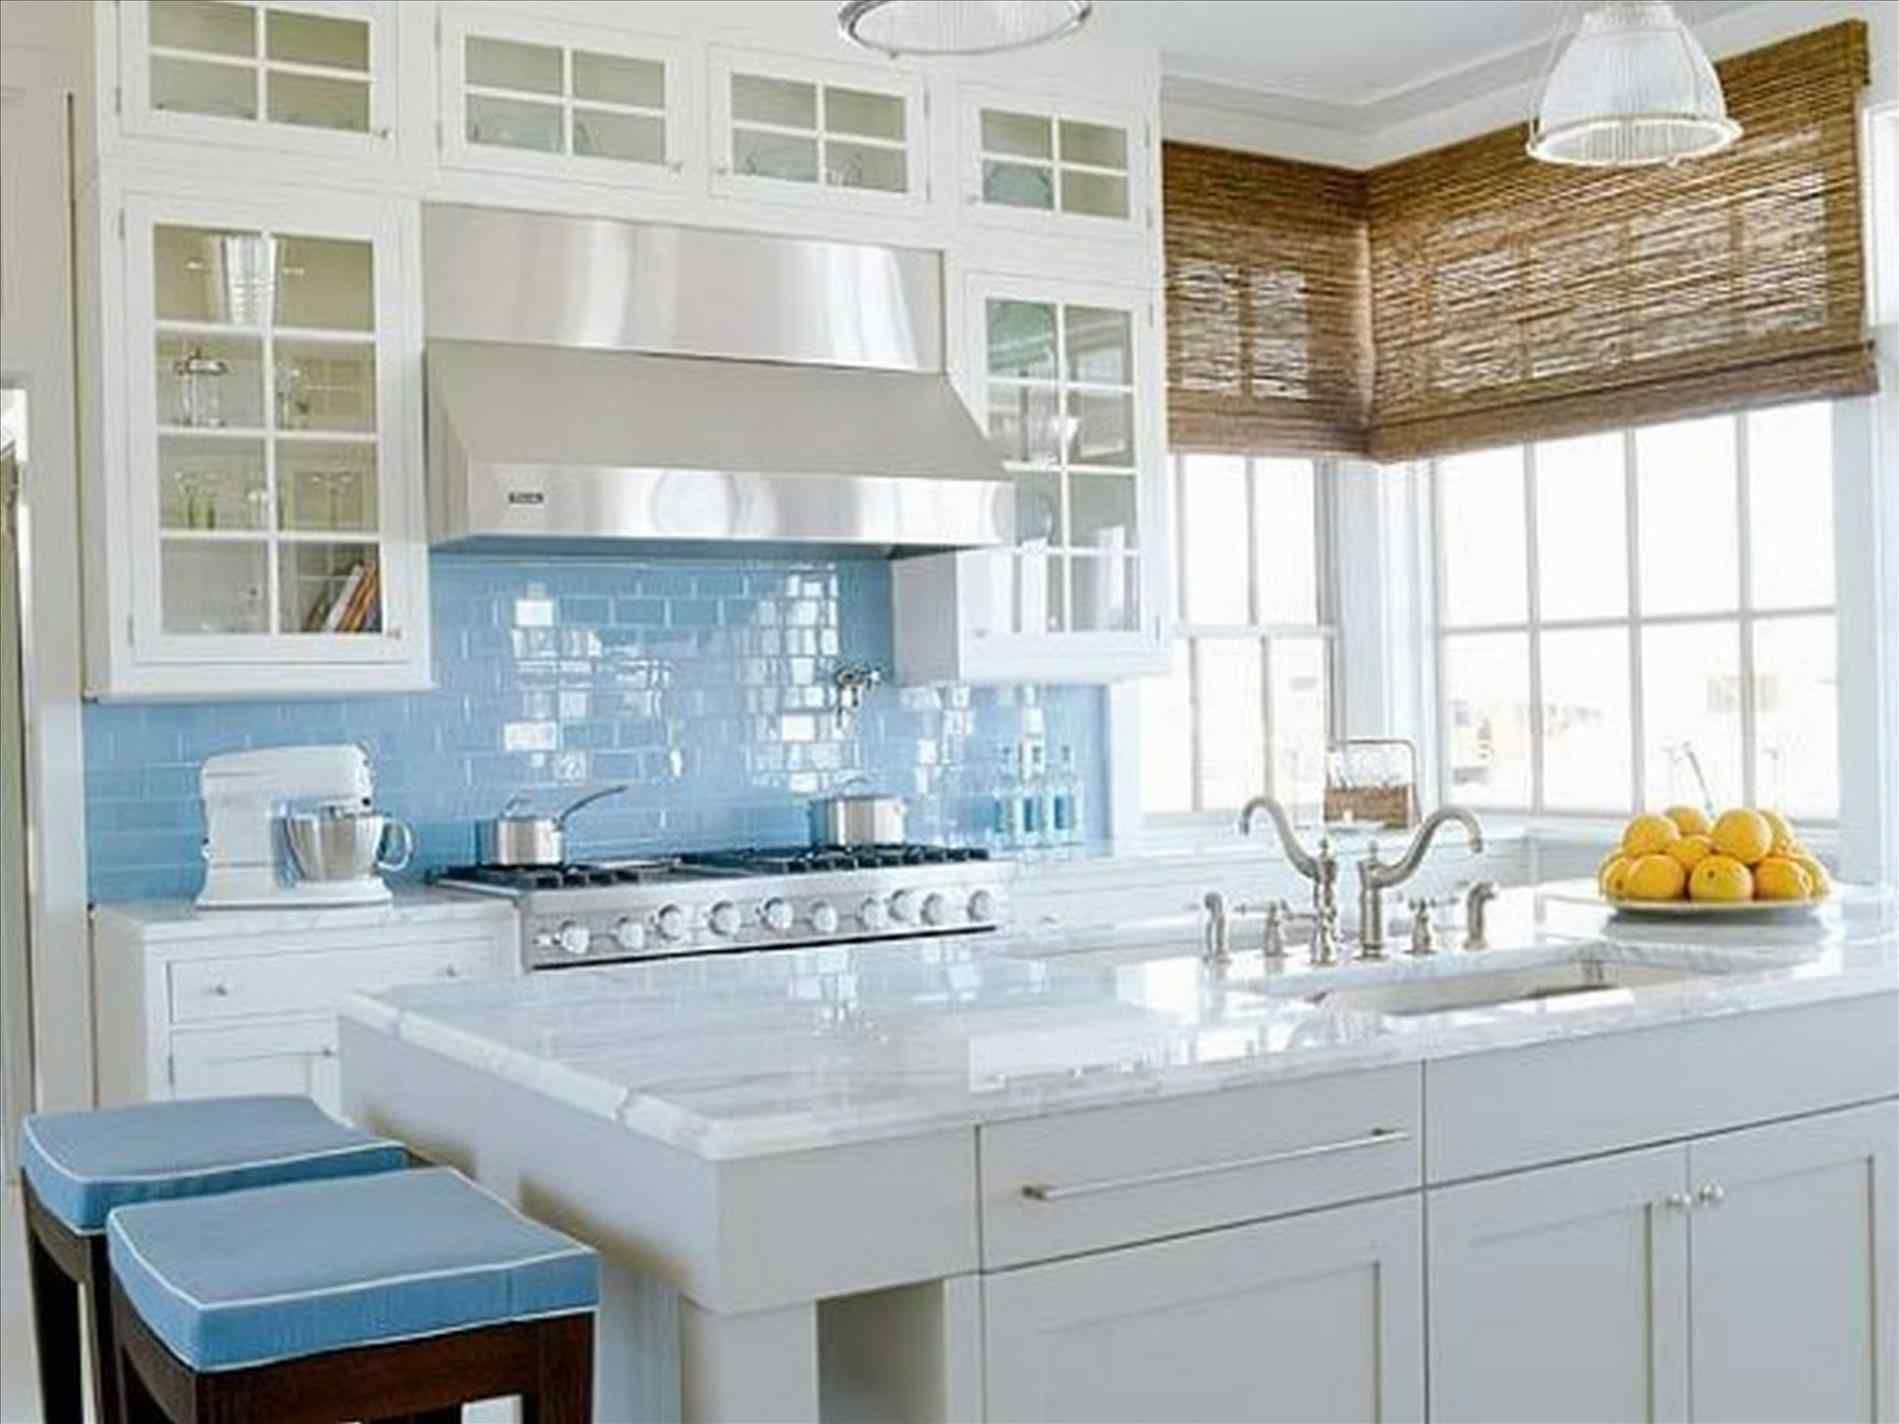 New kitchen backsplash designs with white cabinets at xxbb821fo